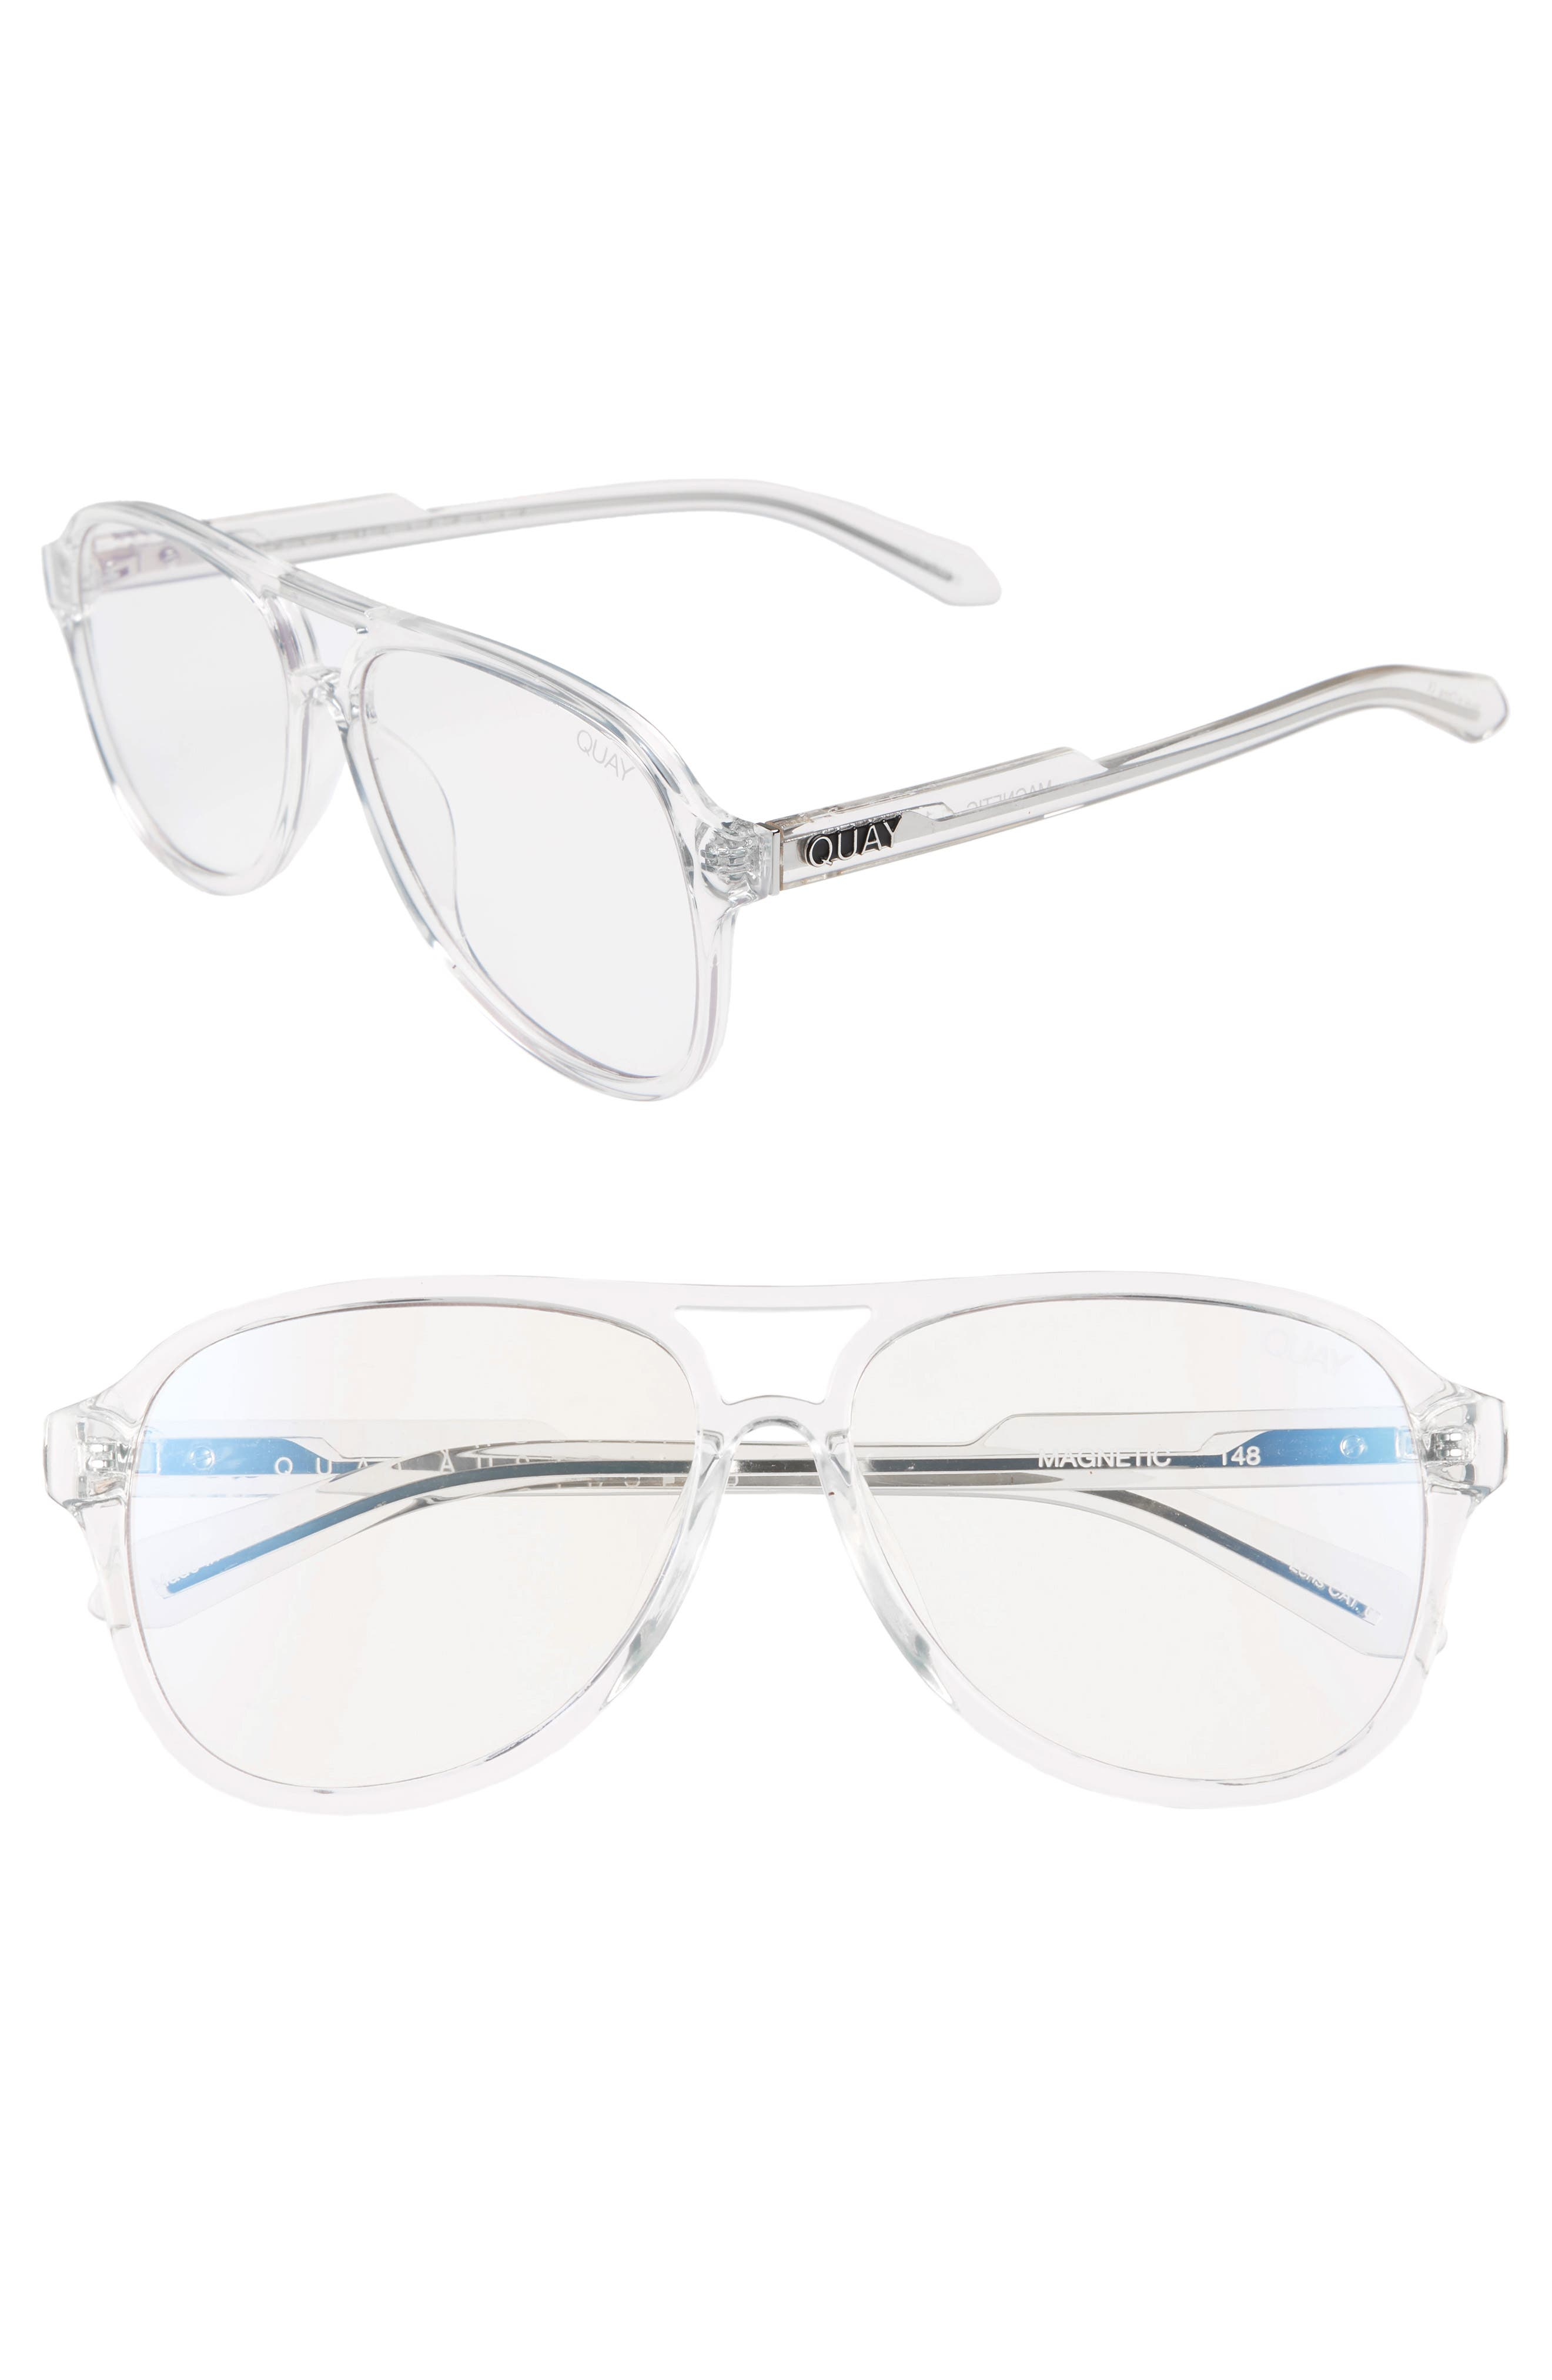 QUAY MAGNETIC 55MM AVIATOR FASHION GLASSES - CLEAR/ CLEAR